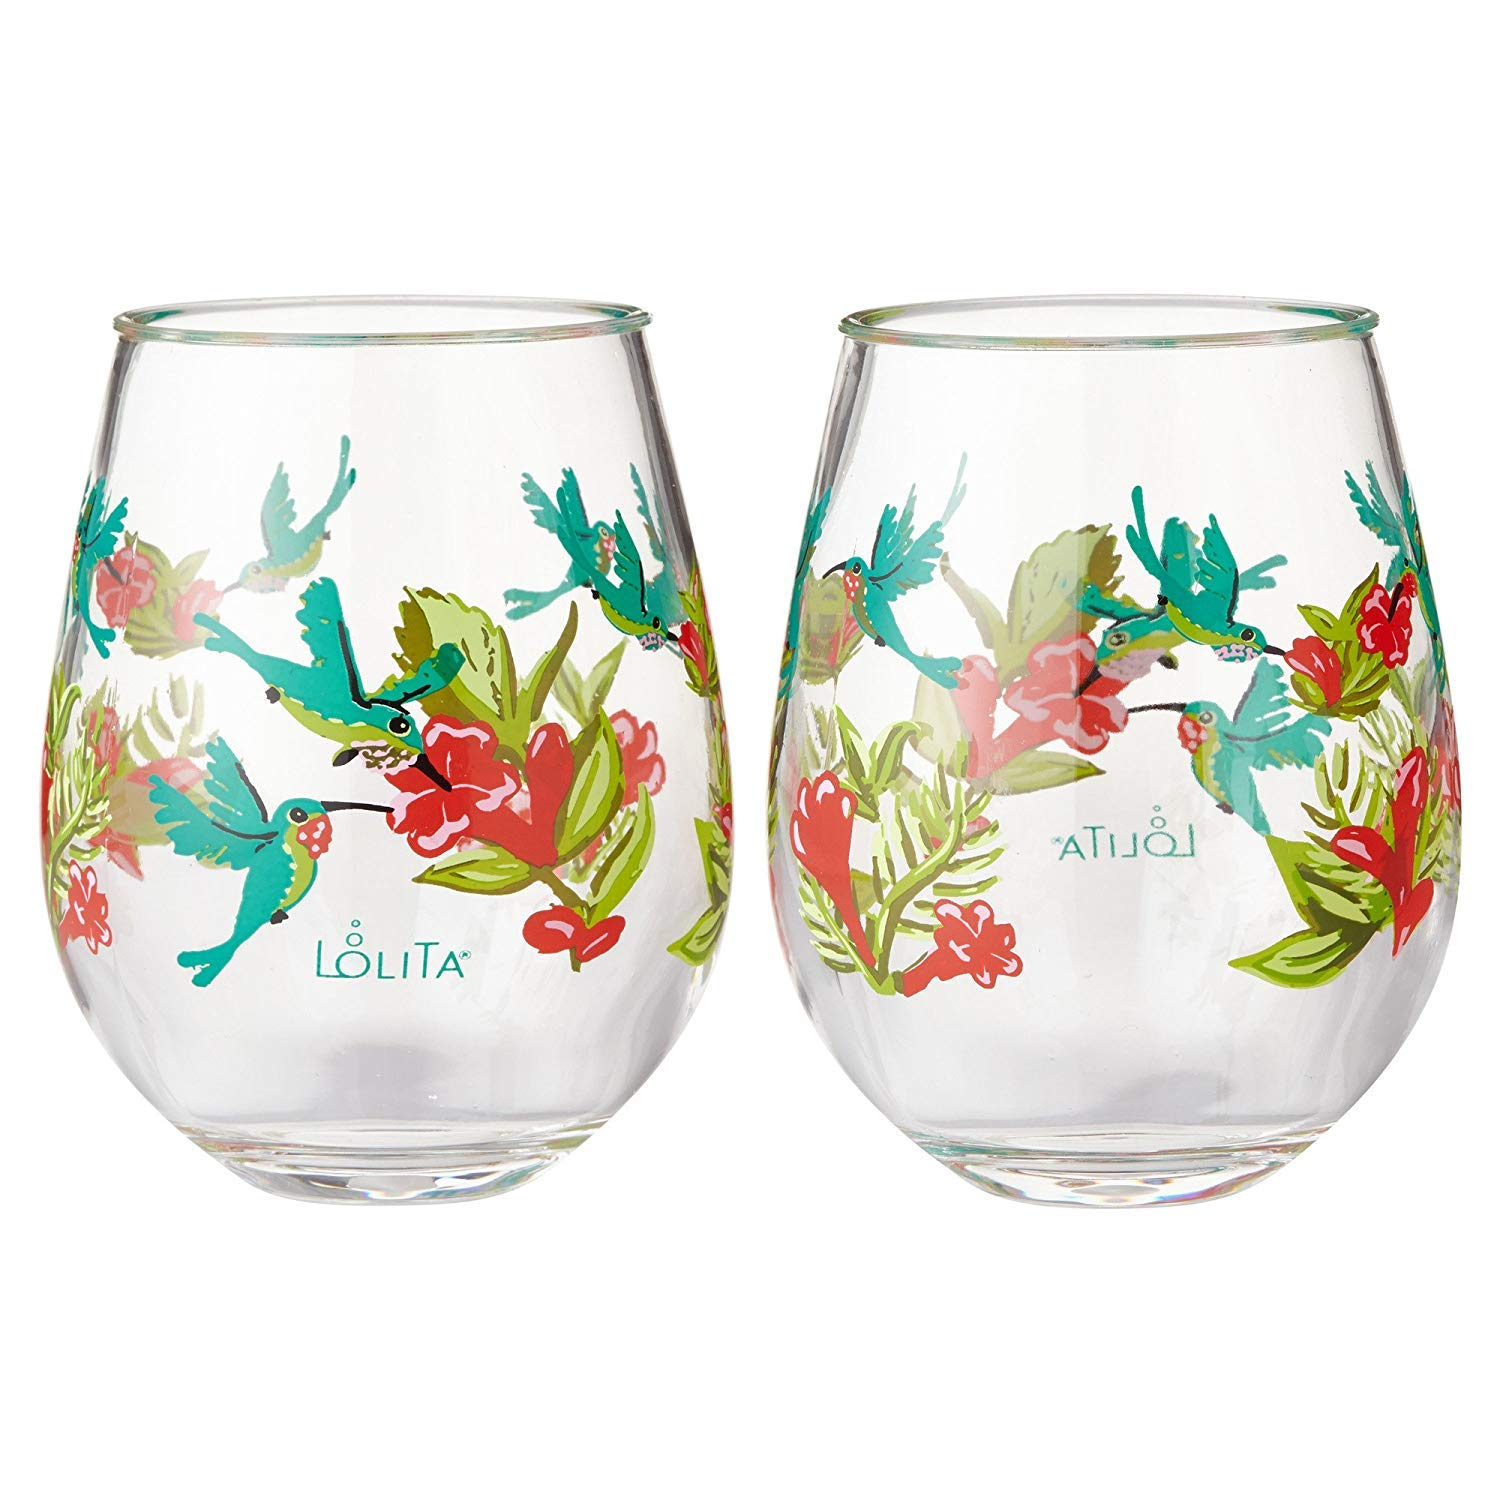 Birthday Gift Ideas for New First Time or Seasoned Grandmother from Granddaughter//Grandson LolitaHummingbird Acrylic Stemless Wine Glass Set of 2 - Best Mothers Day